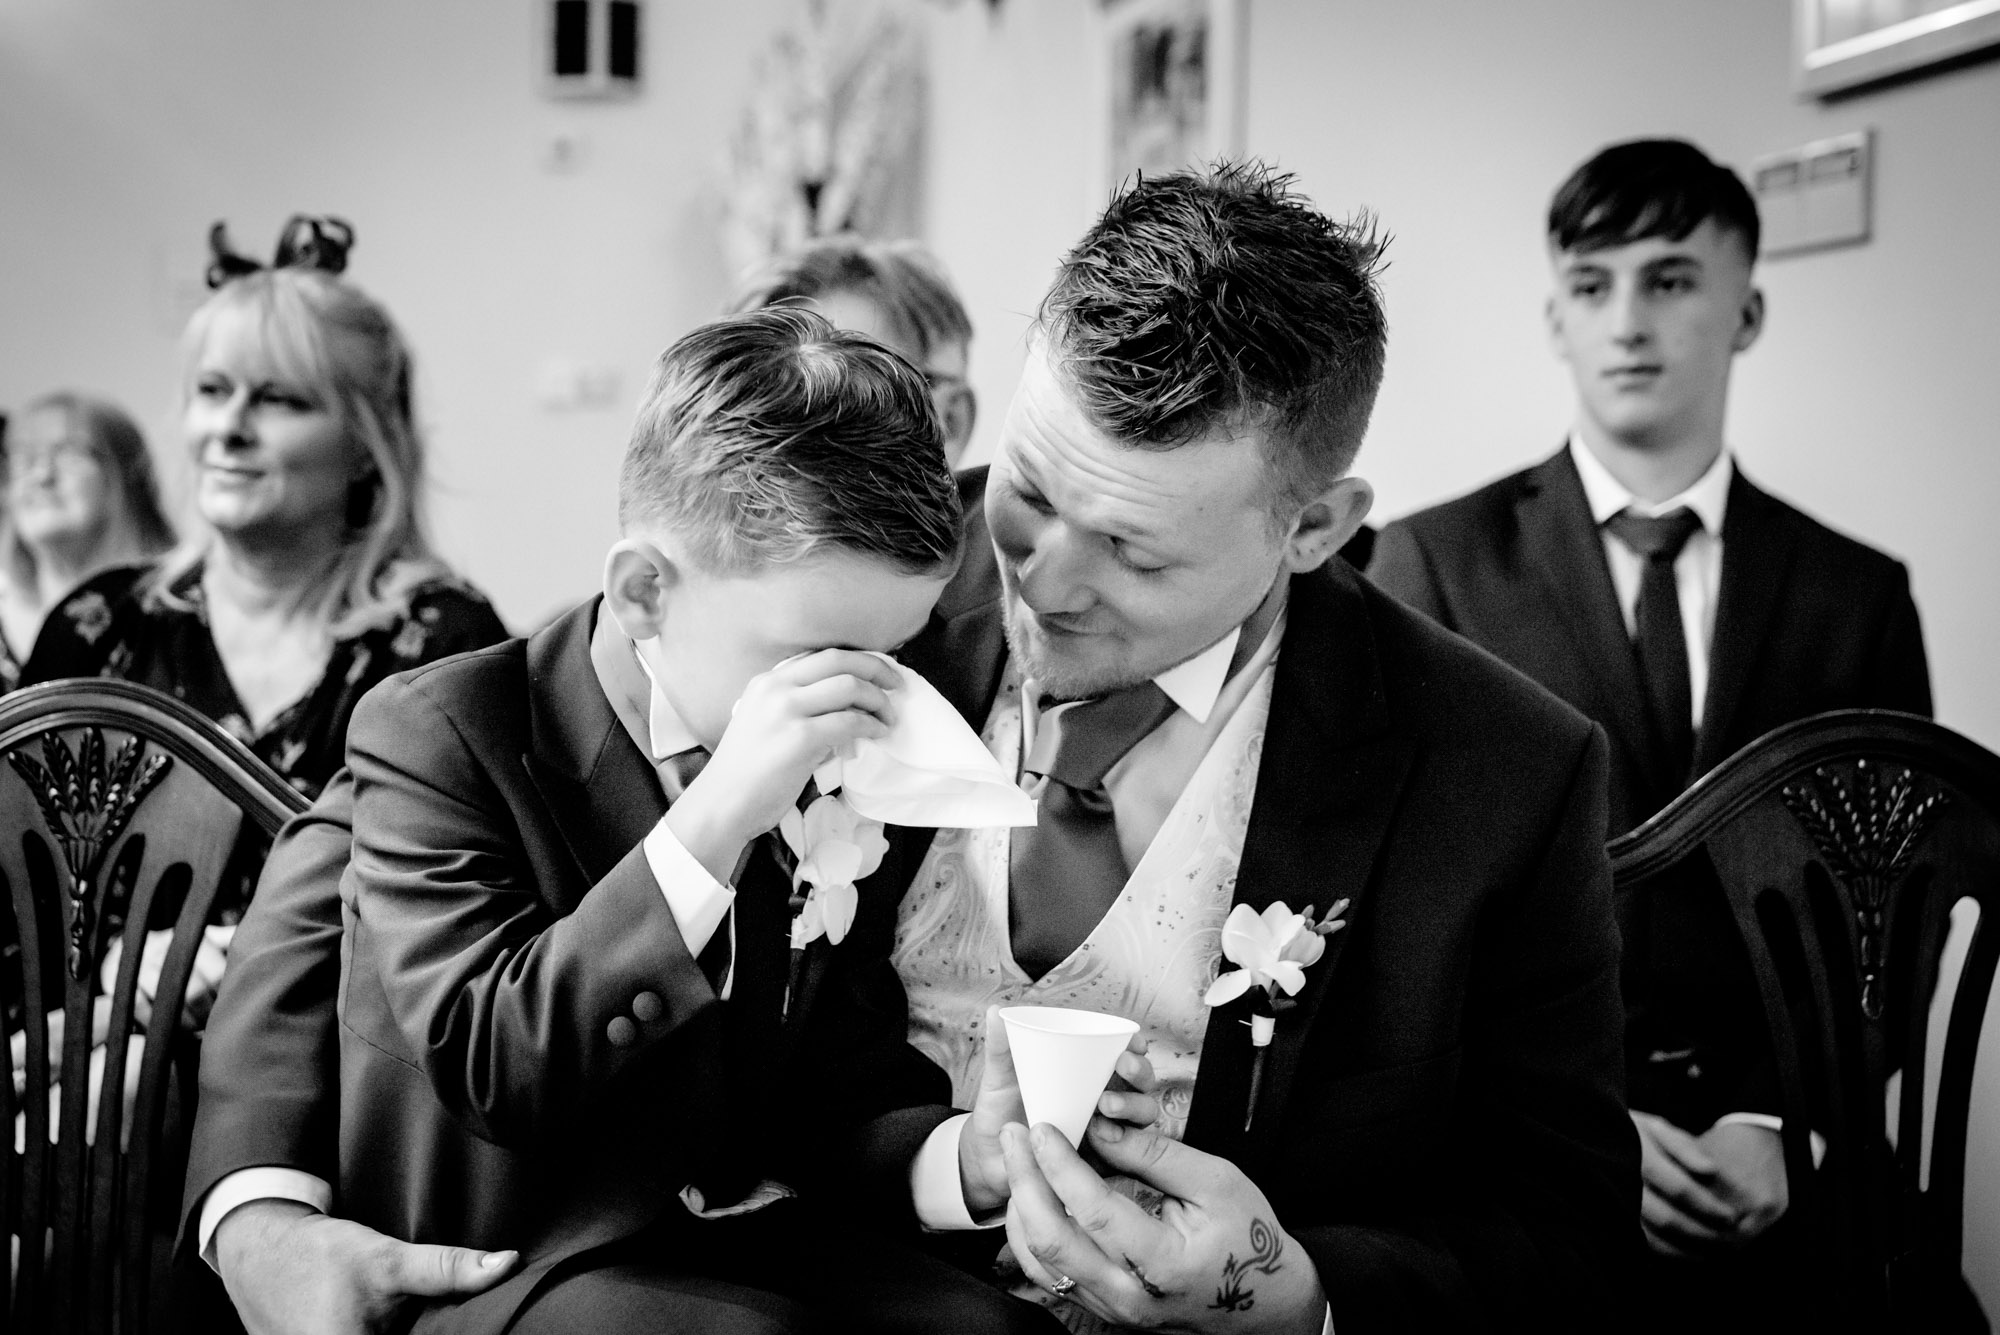 Bride's son getting emotional during the ceremony